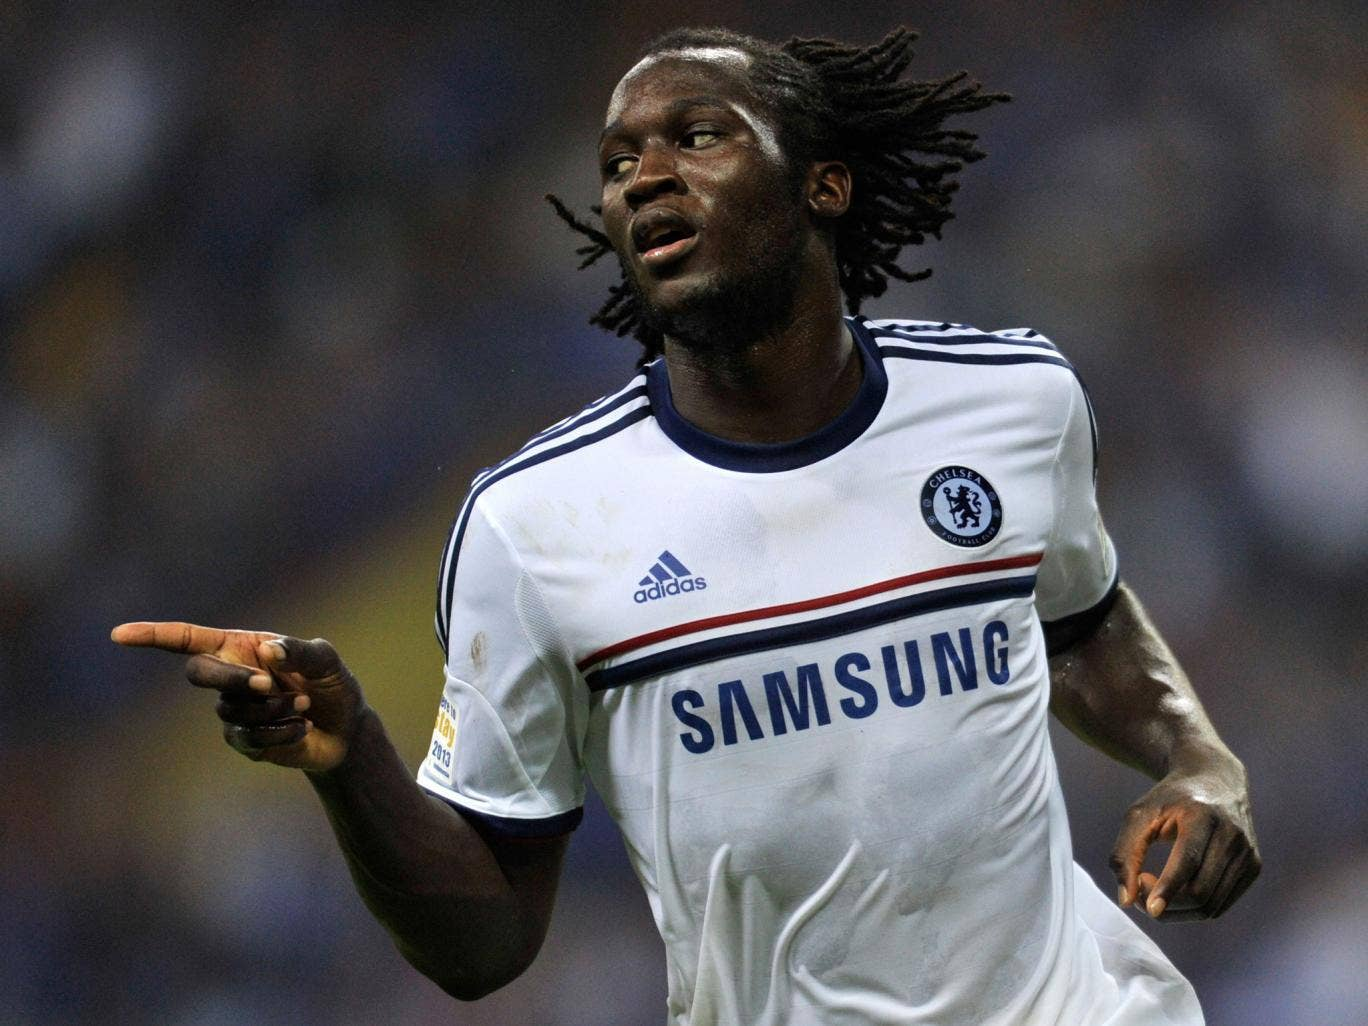 Romelu Lukaku celebrates a goal in Chelsea's 4-1 win over a Malaysia XI